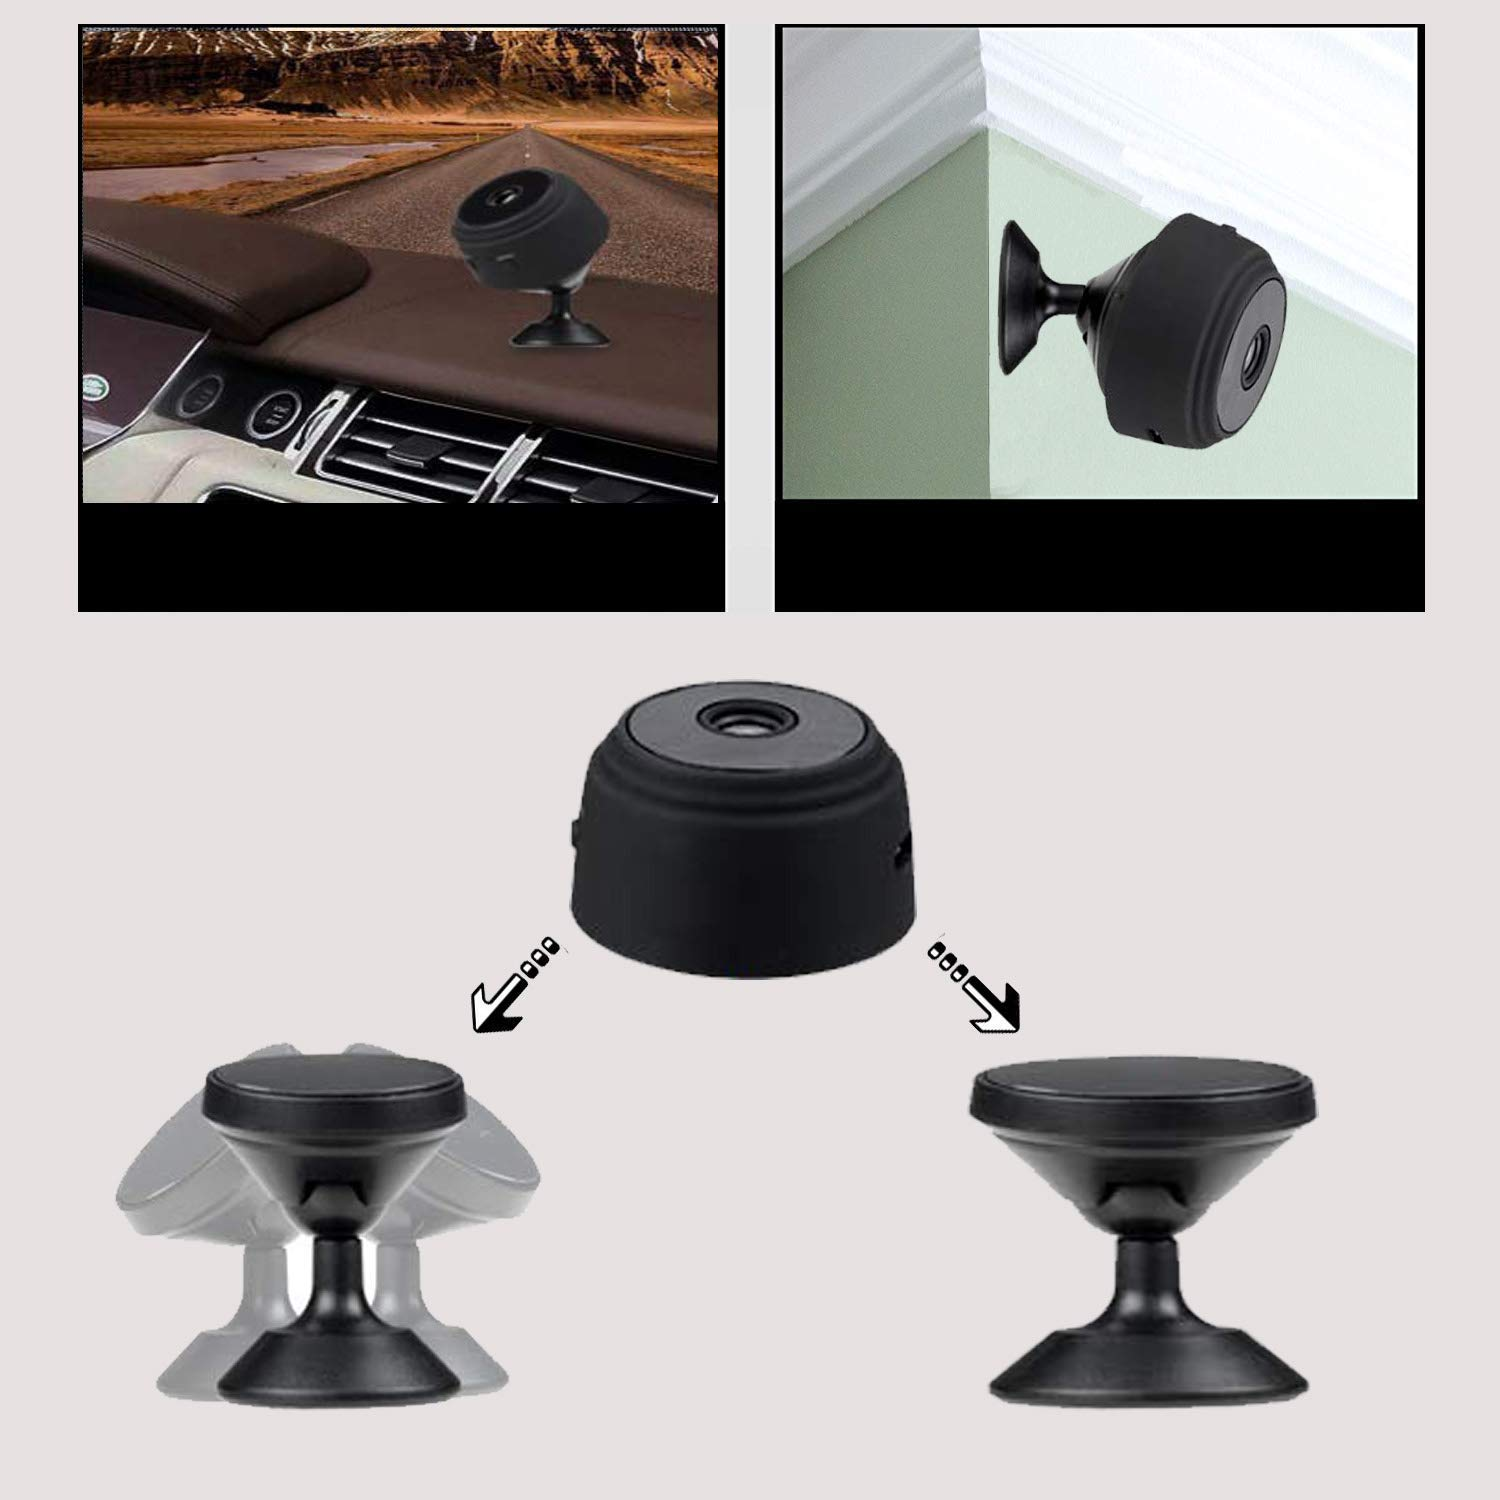 Versatile Dash Cam Wifi with Battery Rear View Camera 1080P with Magnet 150 View Angle SD Card Recording Motion Detection/Night Vision For Smart Phone/Pad/PC Mini Hidden Camera Baby Monitor Dog Camera